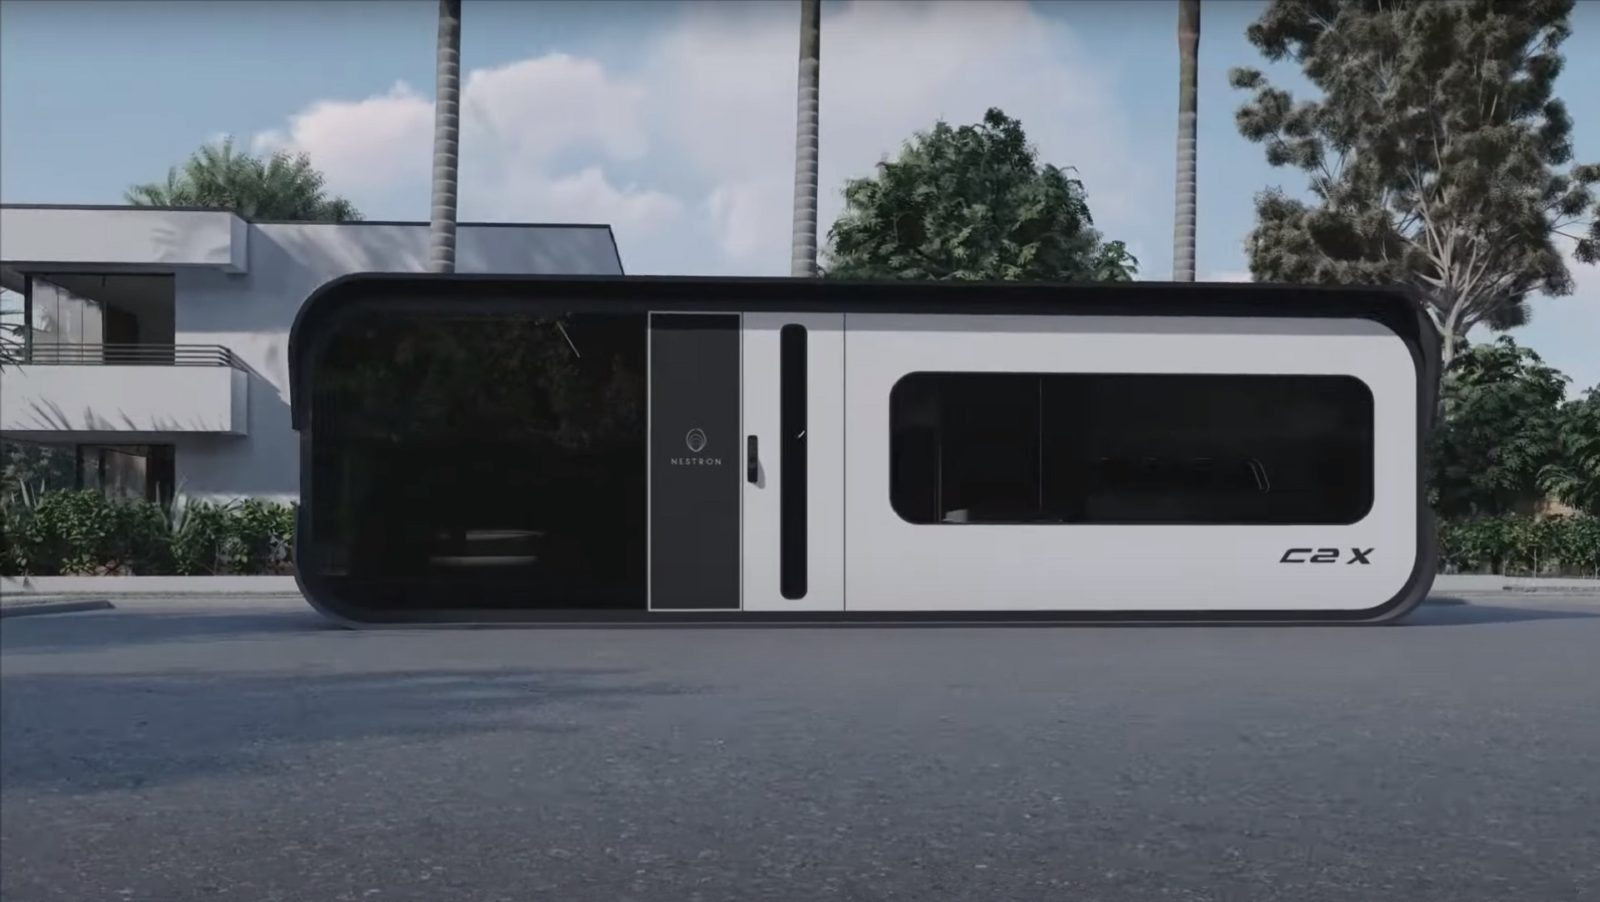 c2x-futuristic-tiny-home-comes-with-ai,-smart-mirrors,-and-motion-sensing-lights